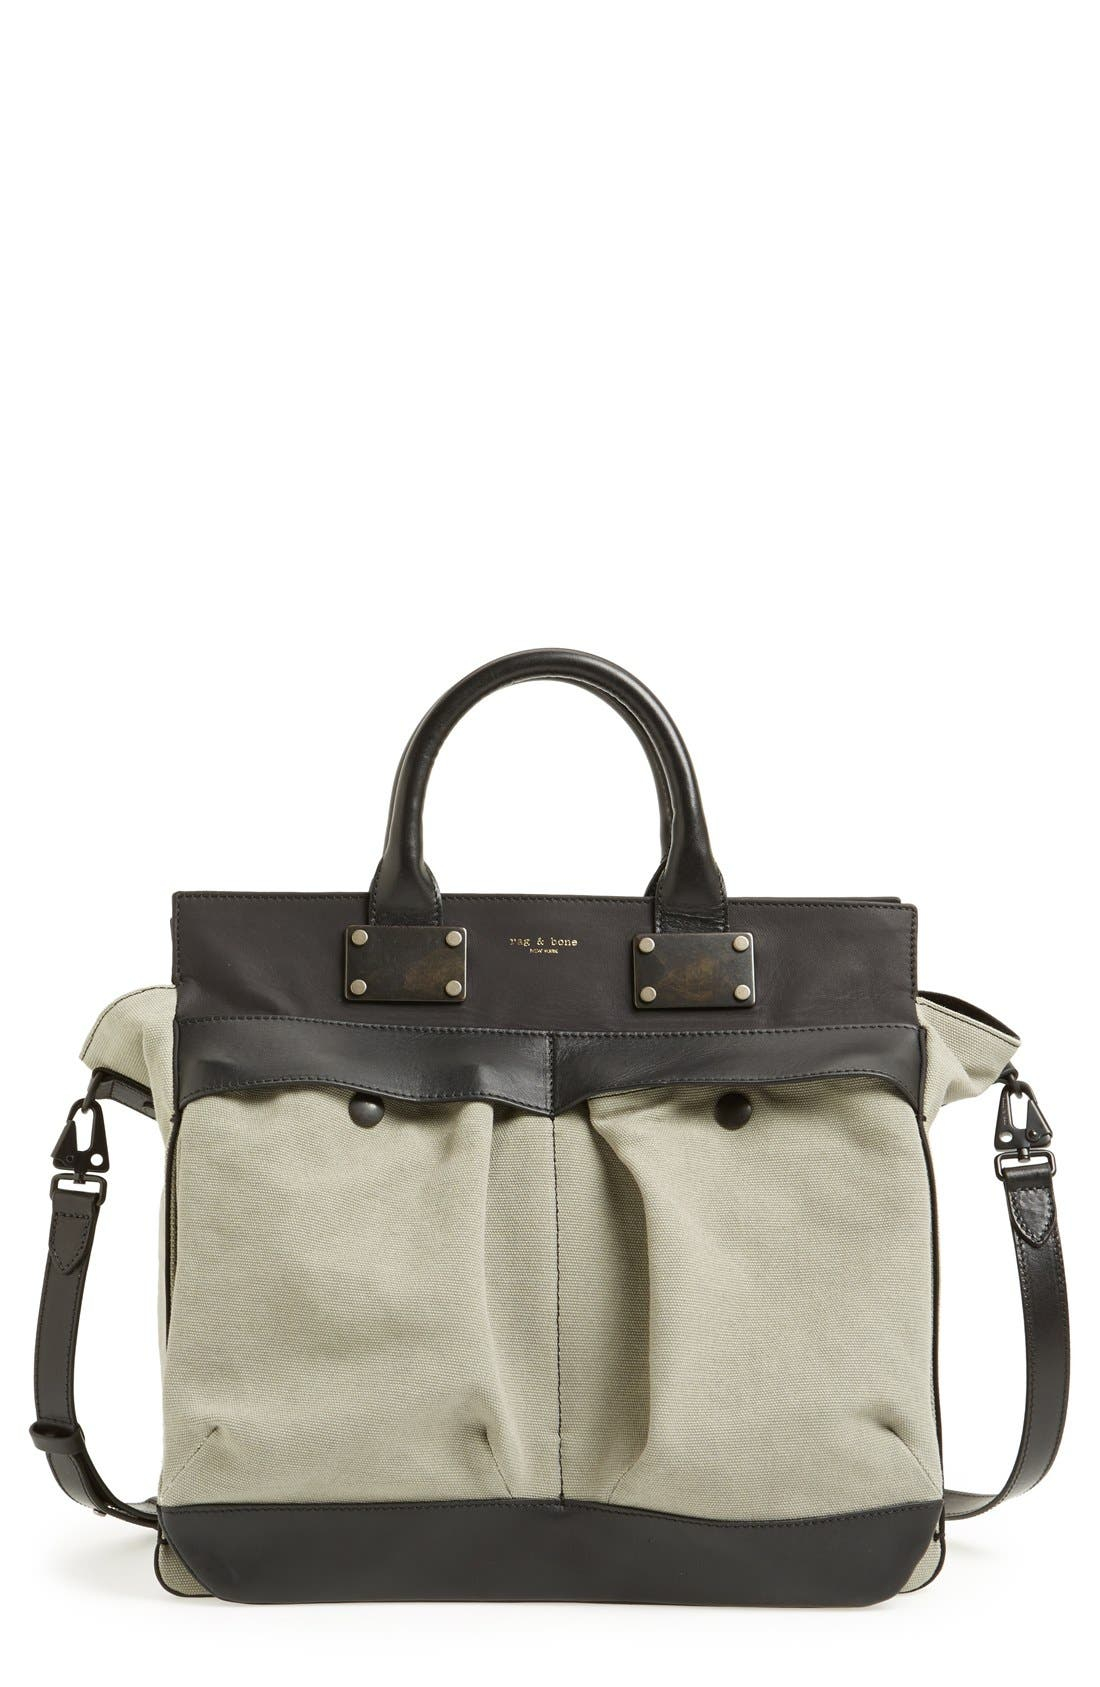 Main Image - rag & bone 'Large Pilot' Canvas Satchel